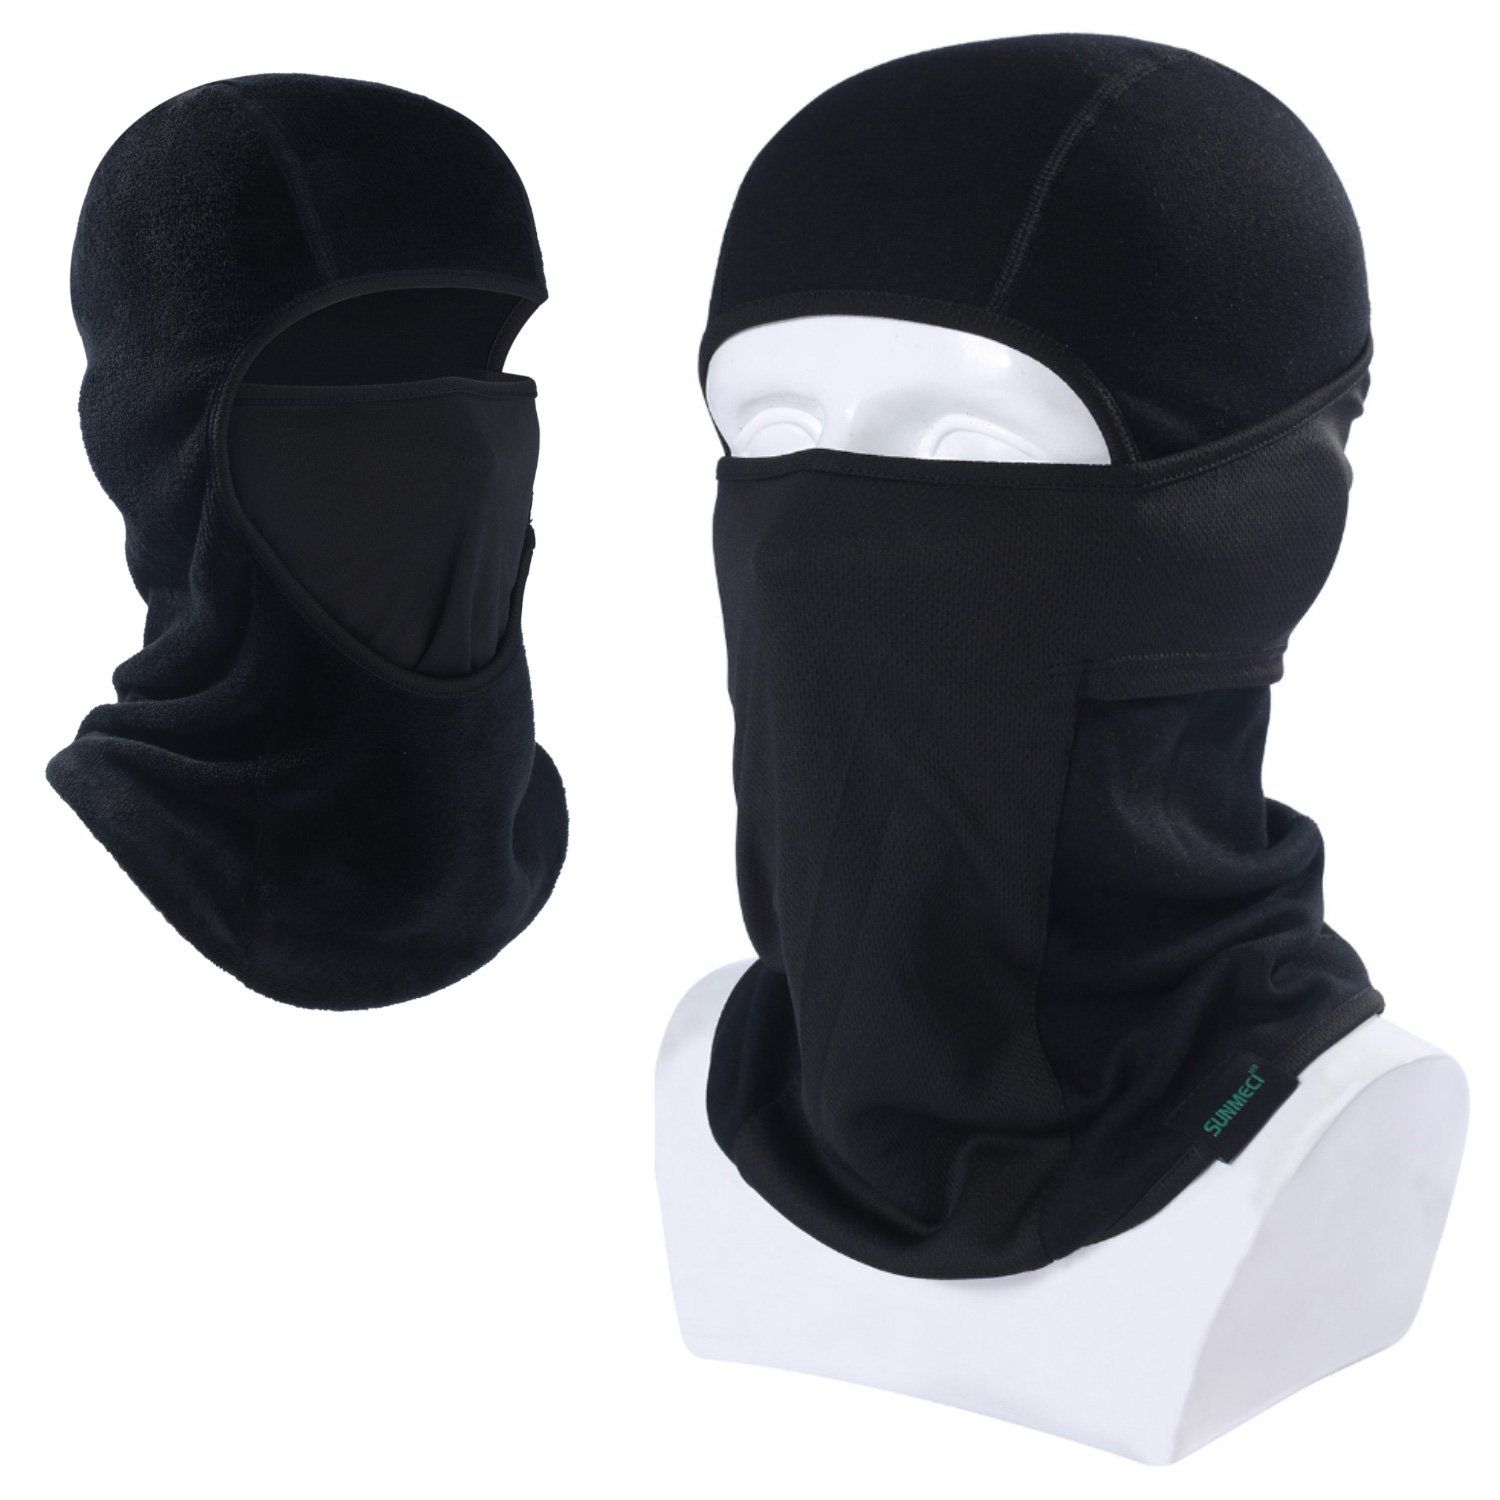 ead979c16c0 Balaclava-Ski Mask Winter Neck Gaiter Warmer Thick Windproof Dust - free UV Face  Mask